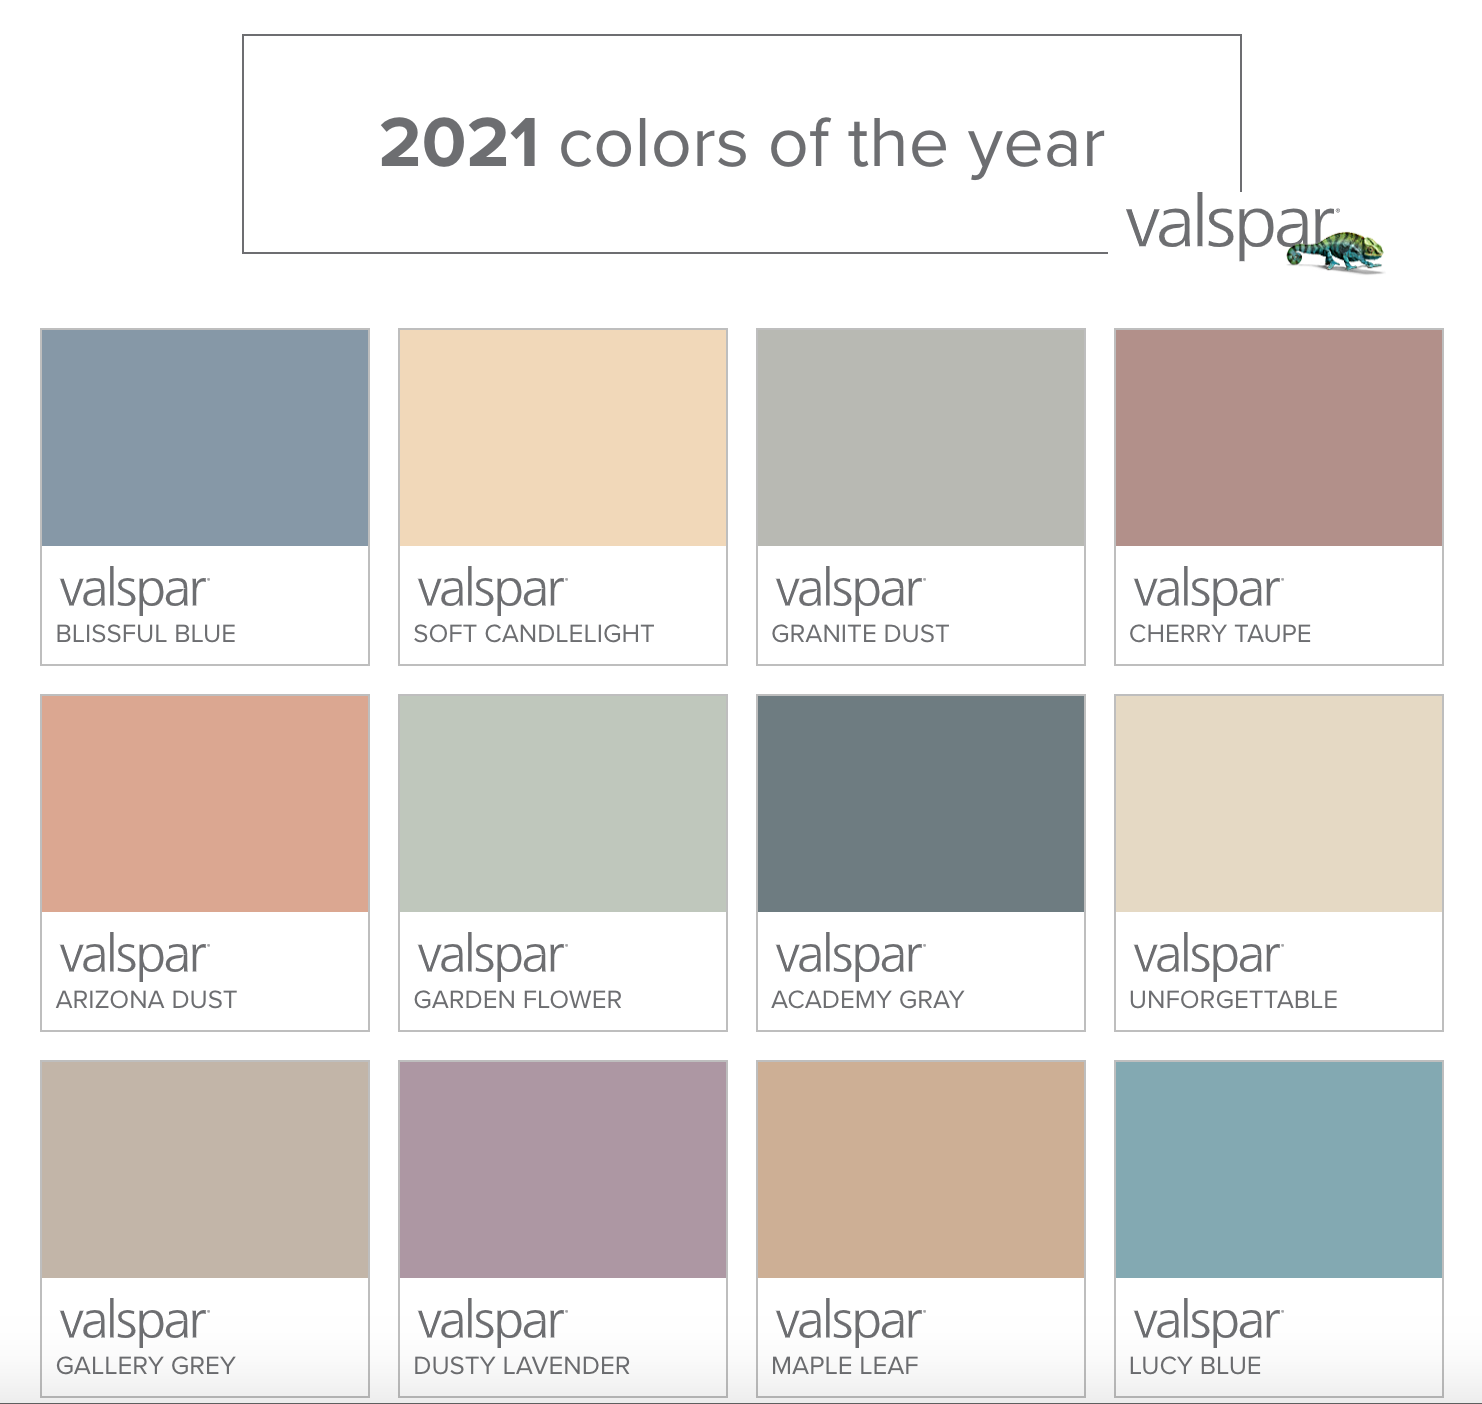 2021 Valspar Colors of The Year